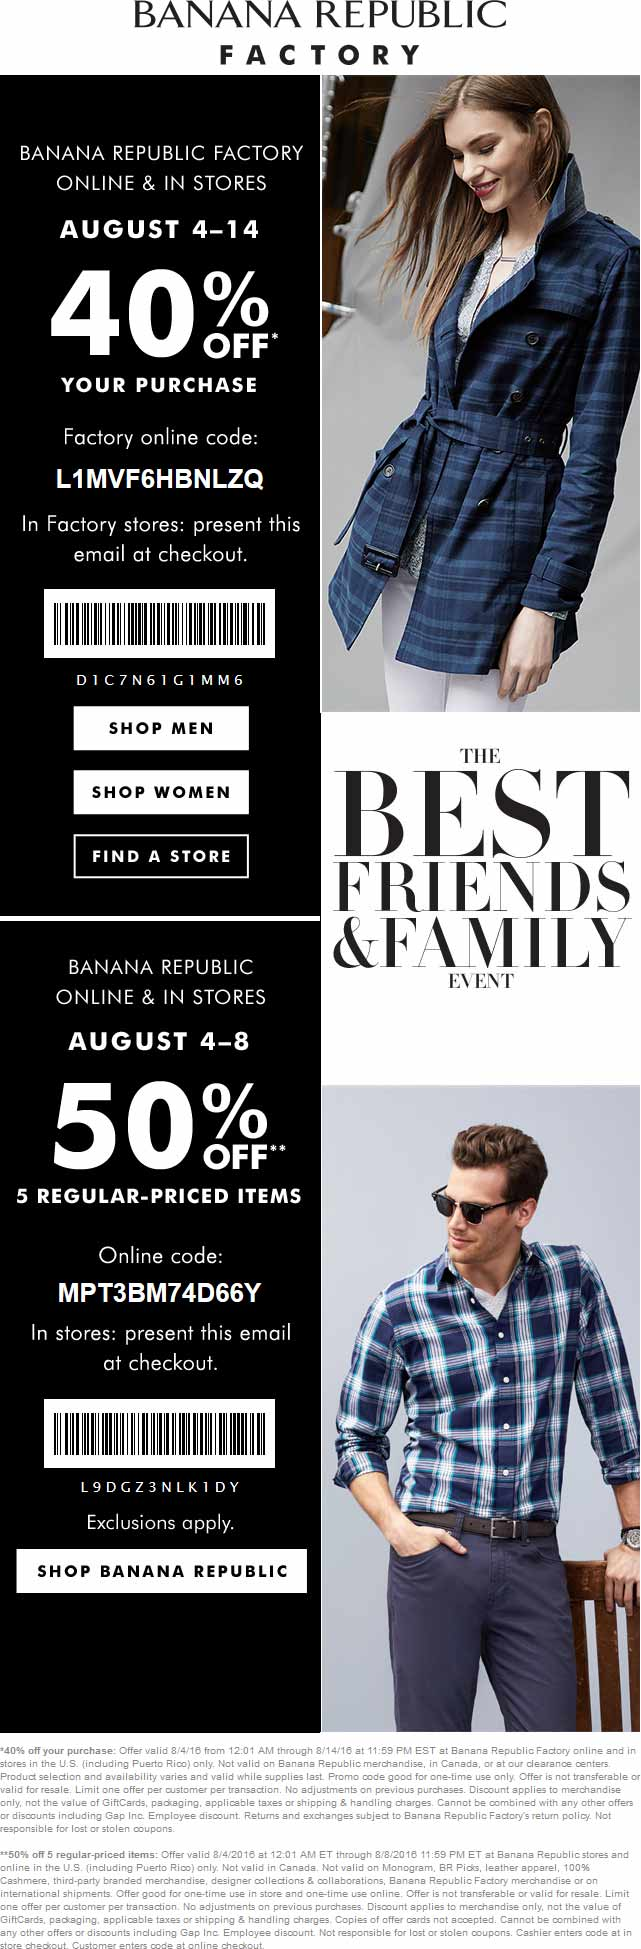 BananaRepublicFactory.com Promo Coupon Extra 40-50% off at Banana Republic Factory, or online via promo code L1MVF6HBNLZQ